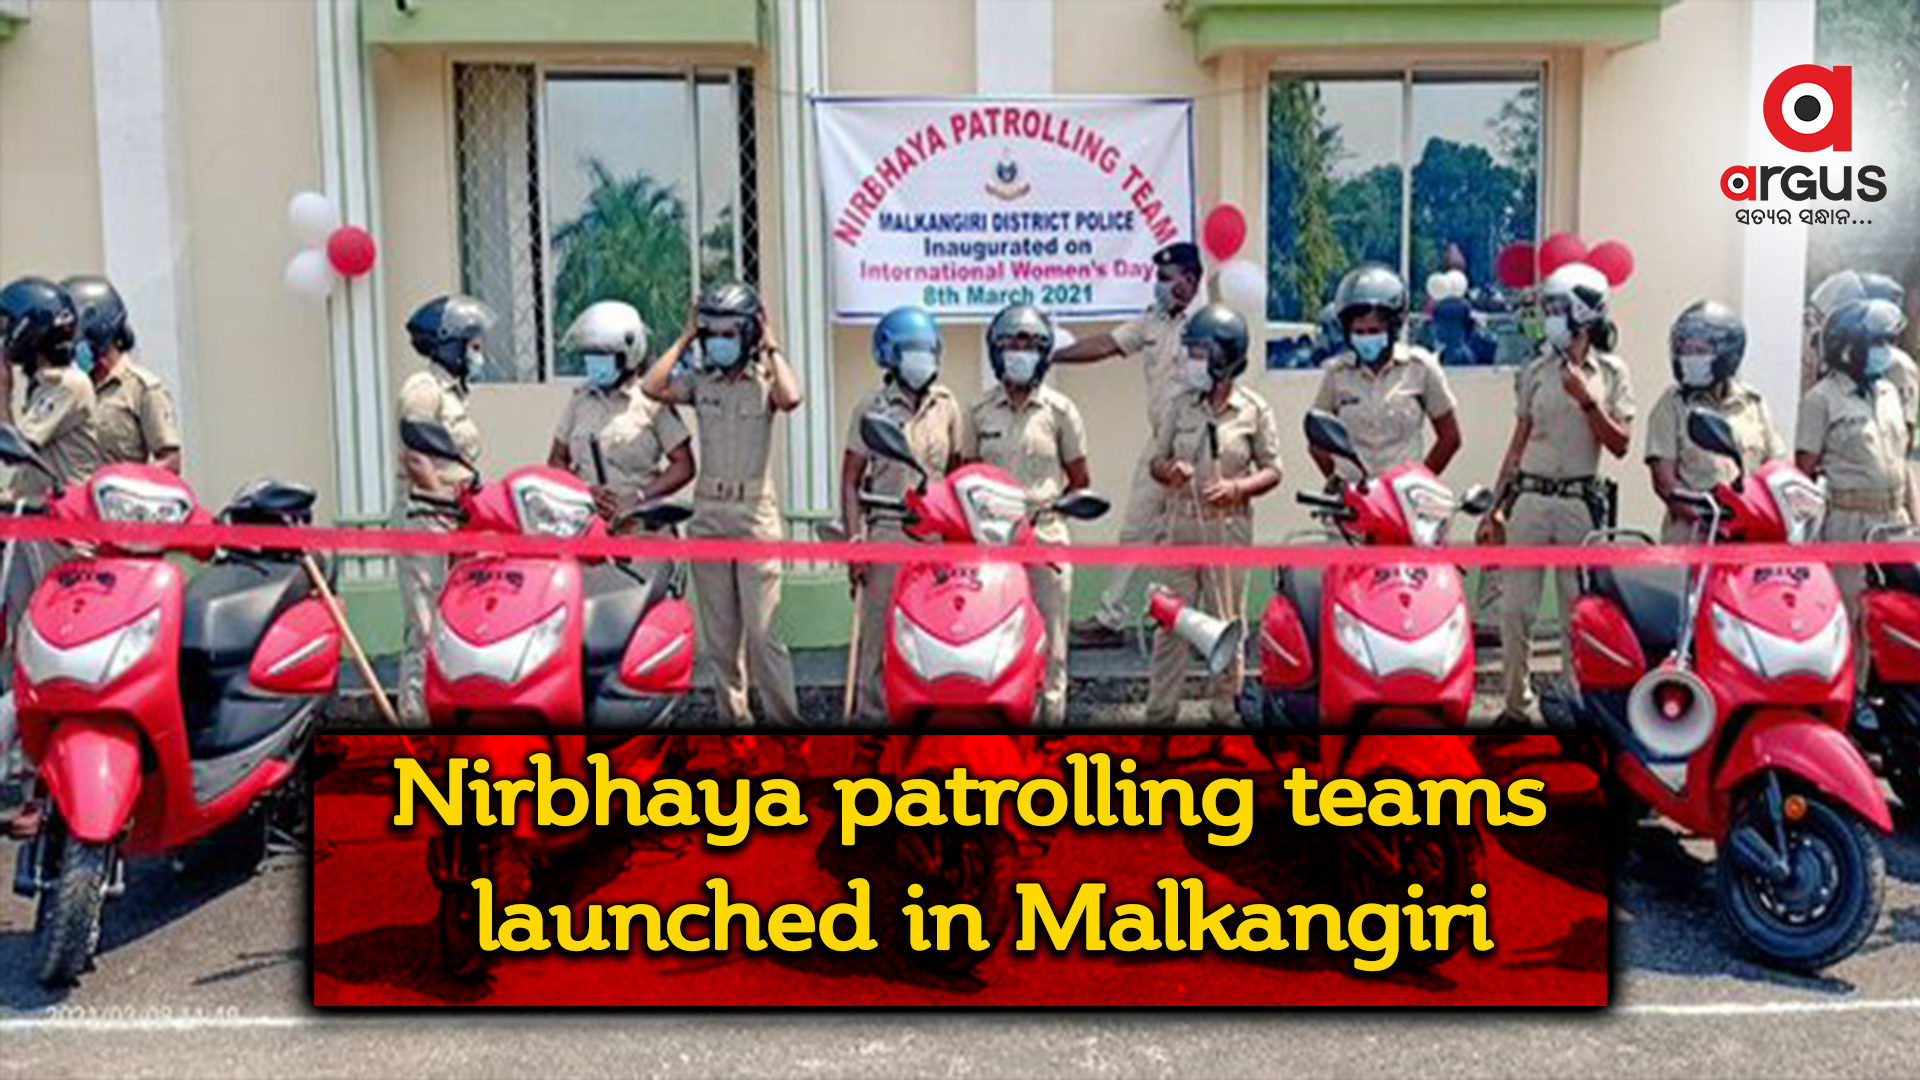 Nirbhaya patrolling teams launched in Malkangiri